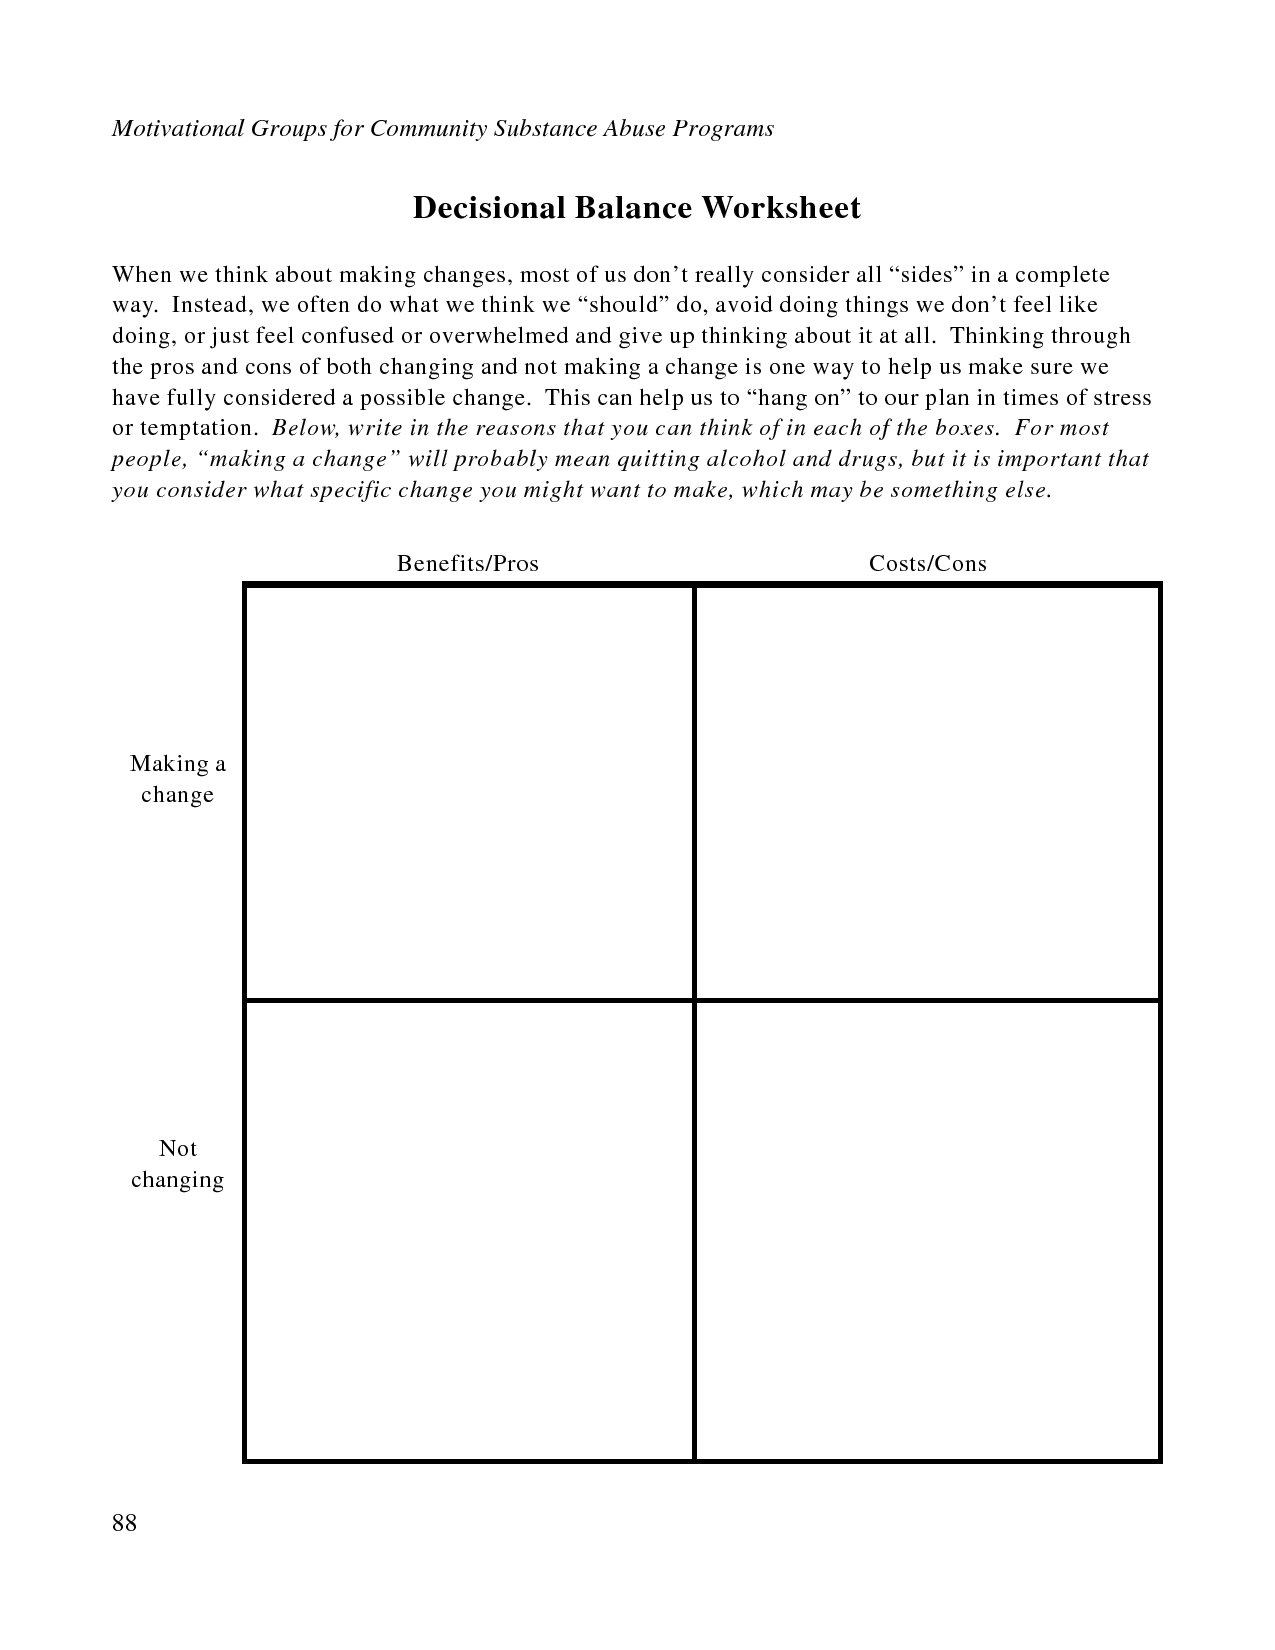 Psychoeducational Handouts Quizzes And Group Activities